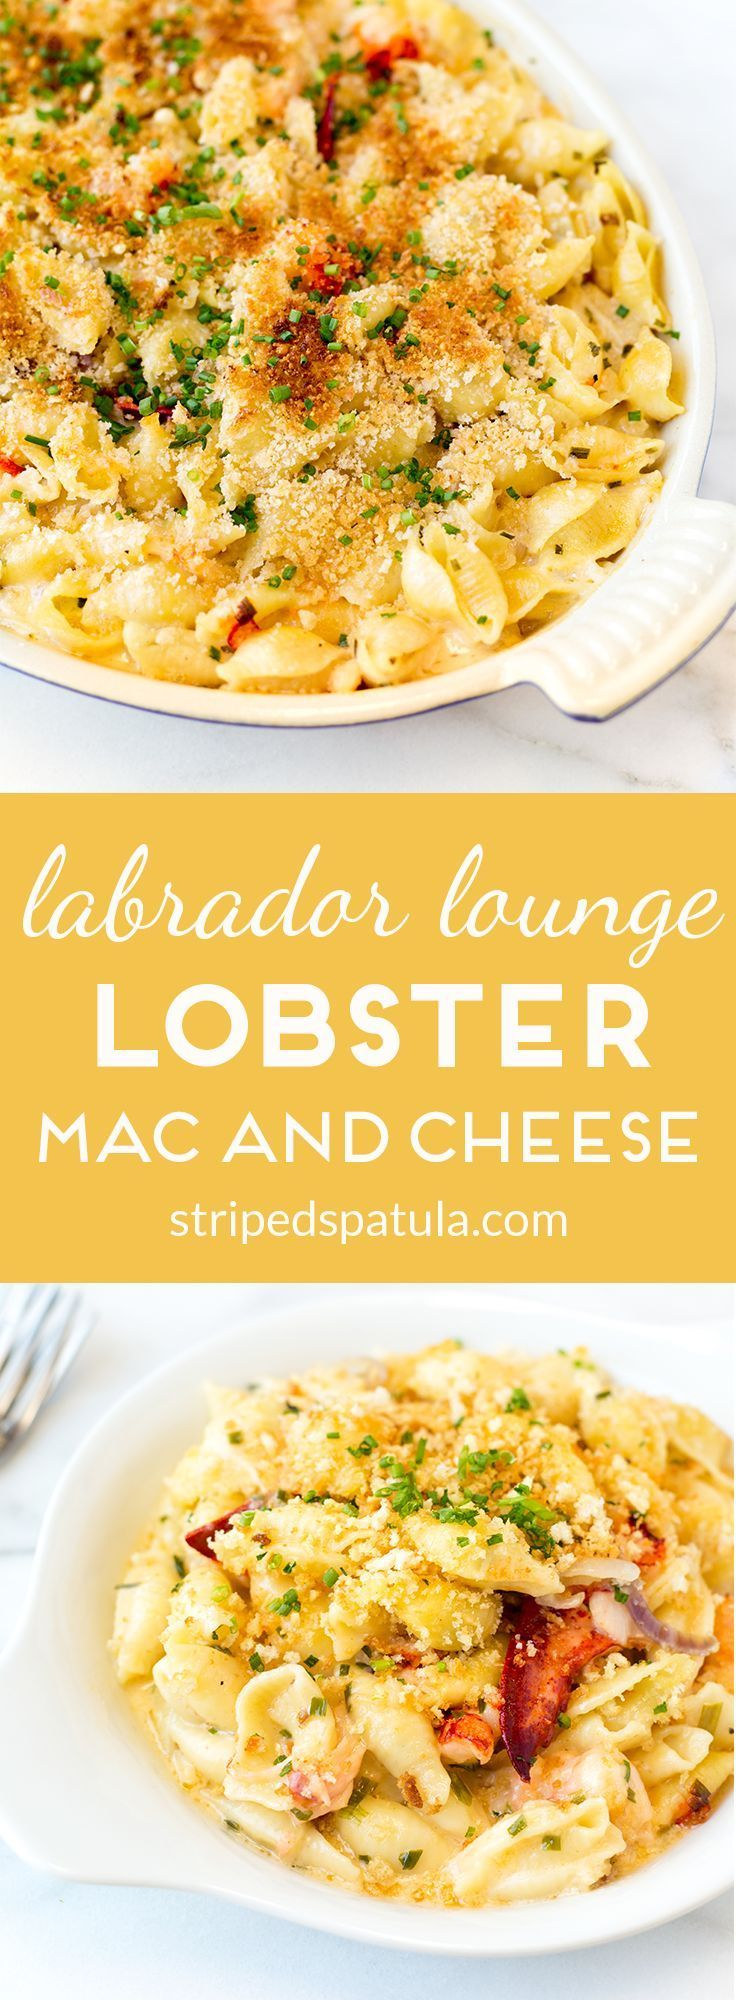 #sponsored The recipe for rich and creamy Lobster Mac and Cheese from Labrador Lounge in Normandy Beach, NJ (via The Jersey Shore Cookbook)